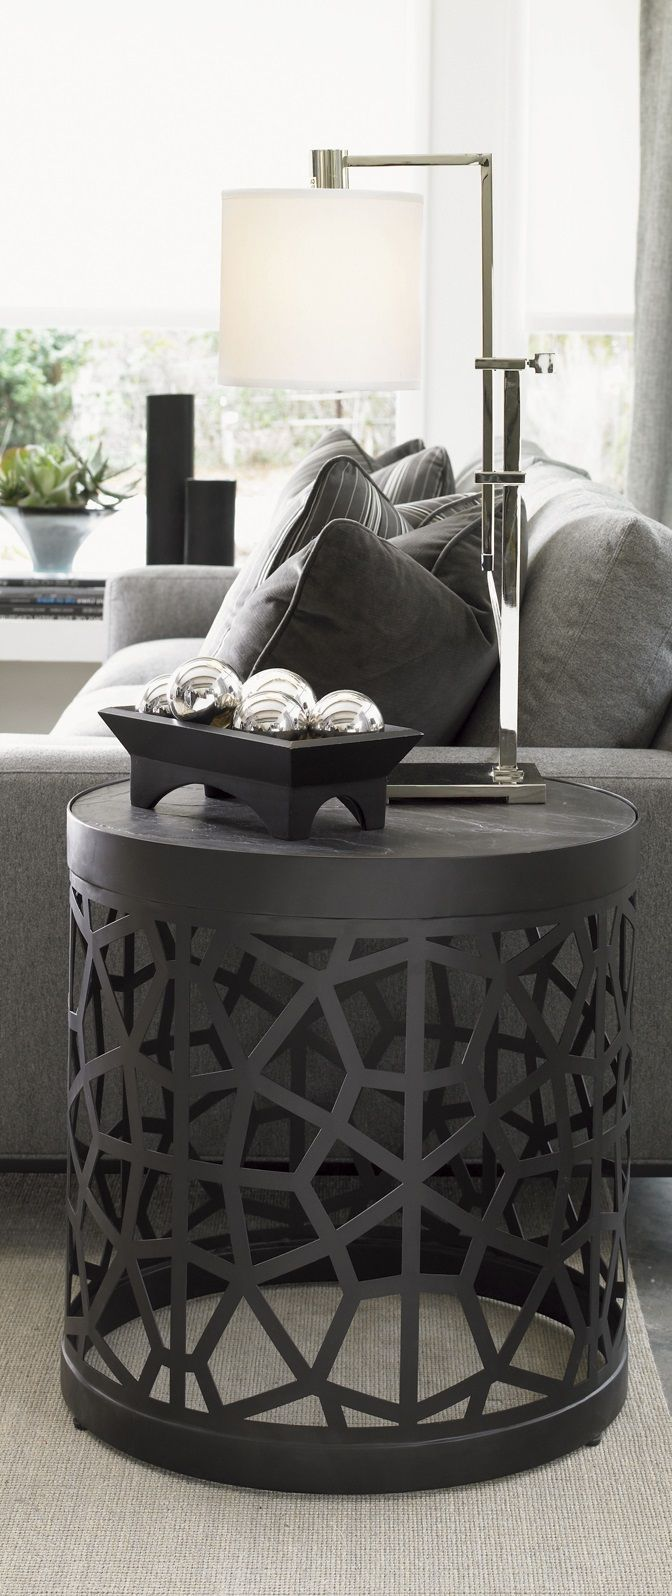 luxury accent tables table black end living room side interiordesign casegoodsideas grey brown nightstand kmart gold what colors with dark leather furniture ashley swivel chair